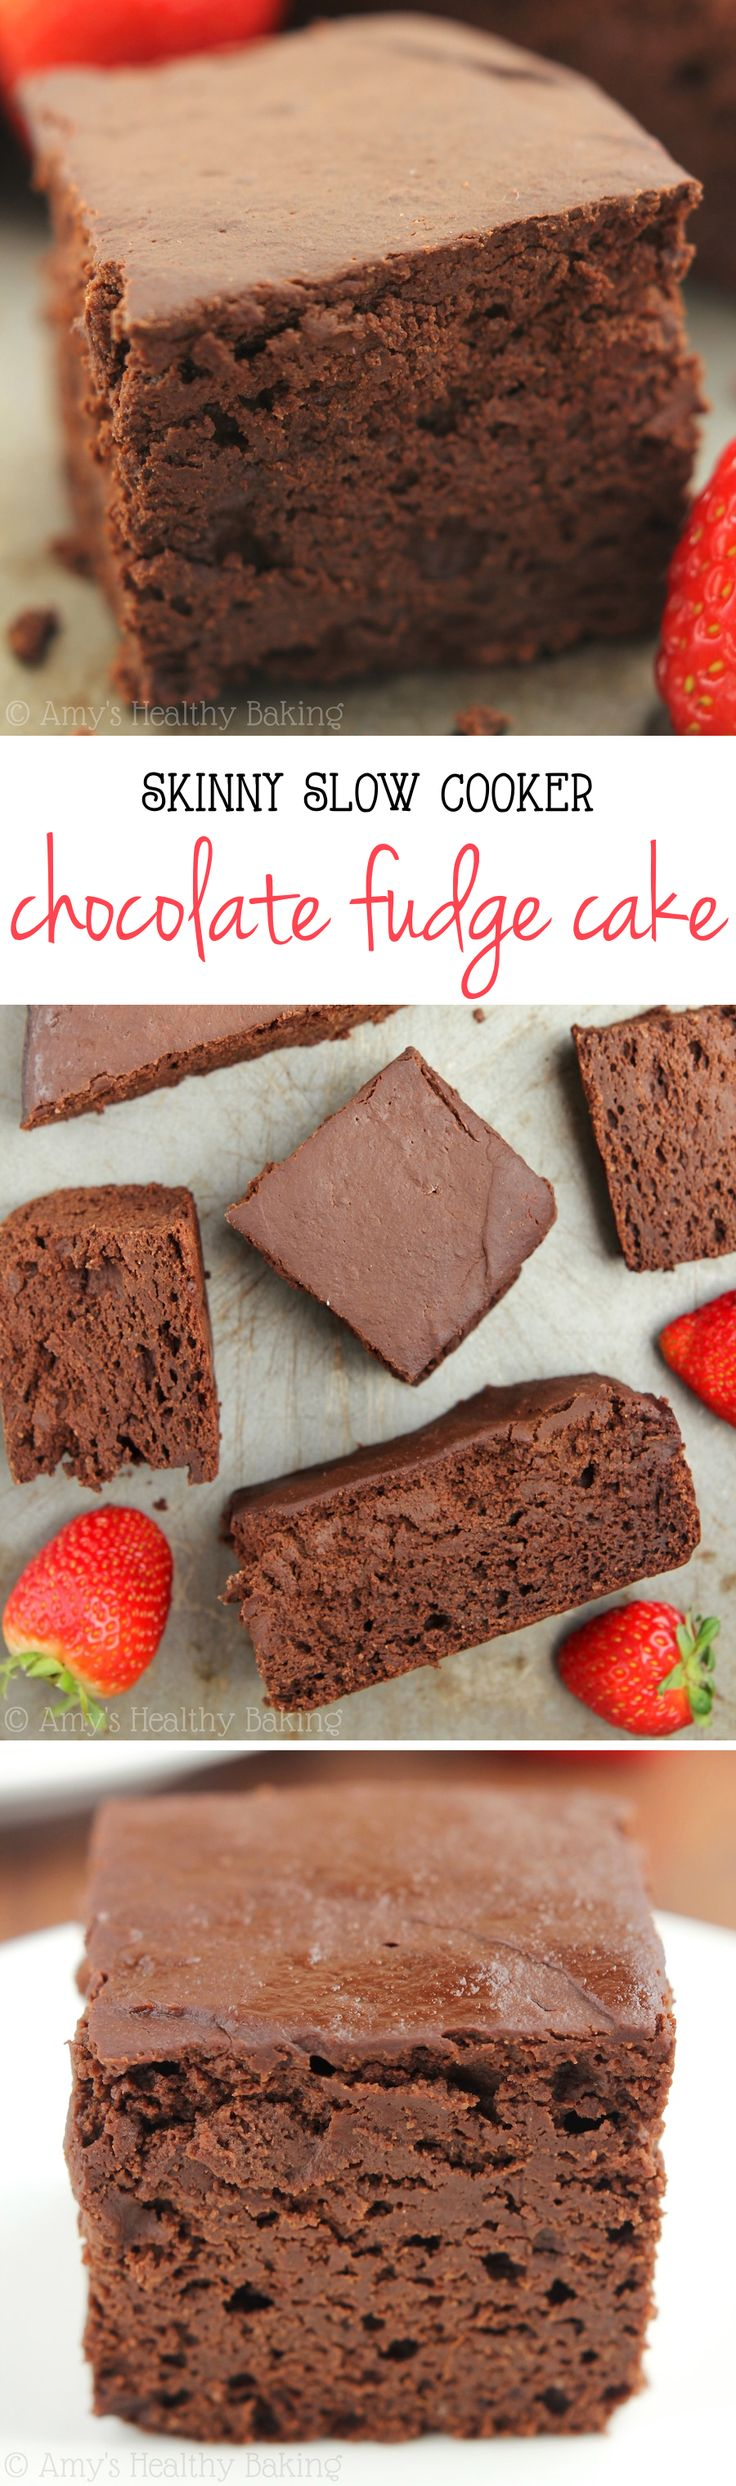 Skinny Slow Cooker Chocolate Fudge Cake -- I'm SO obsessed! So easy, super rich & just 150 calories!